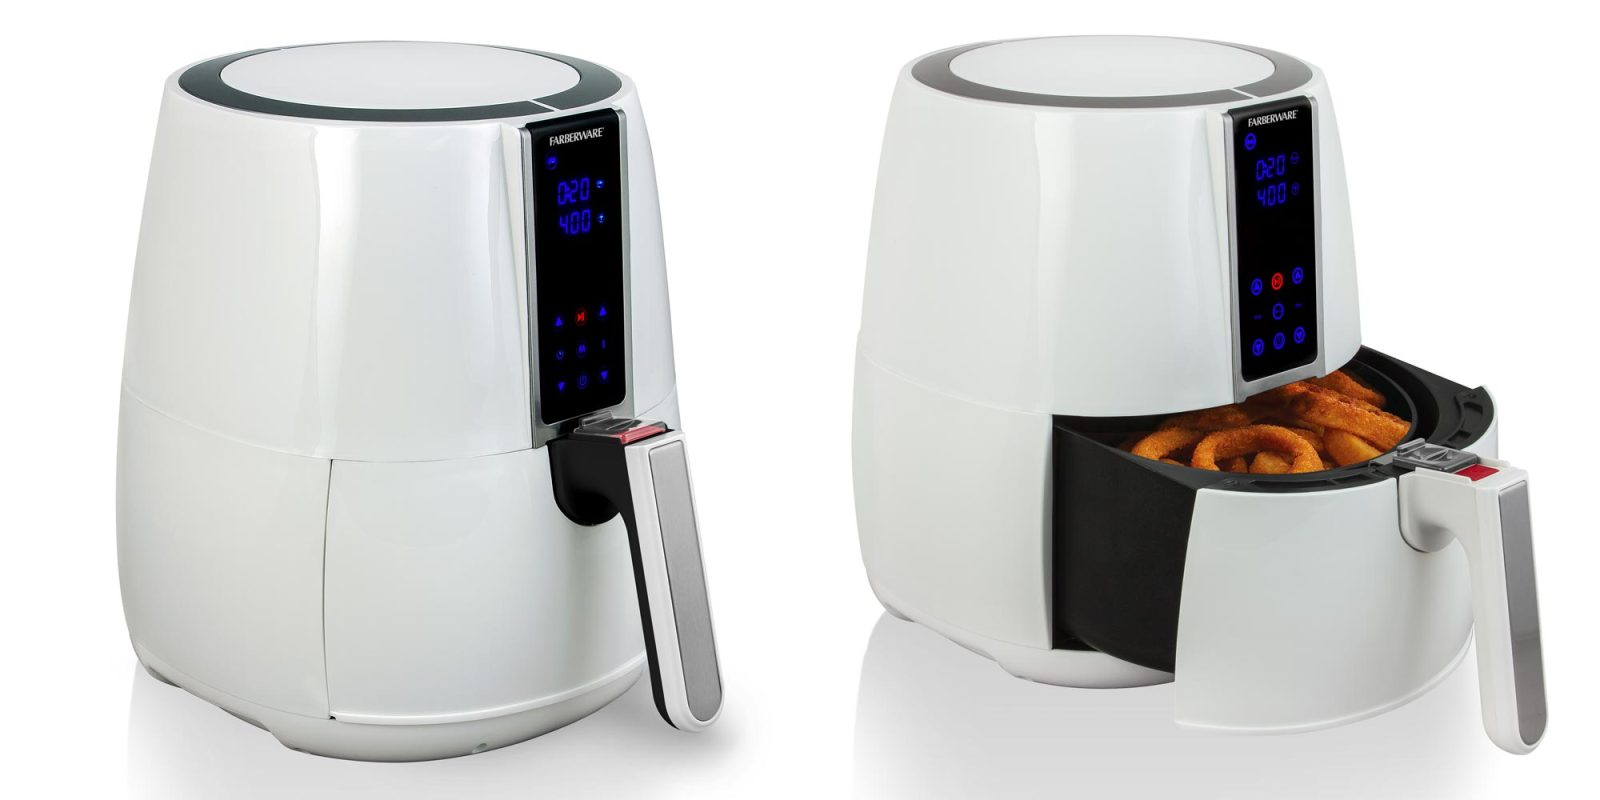 This 3.2-quart Farberware Oil-Less Fryer is just $35 today (Reg. up to $70)